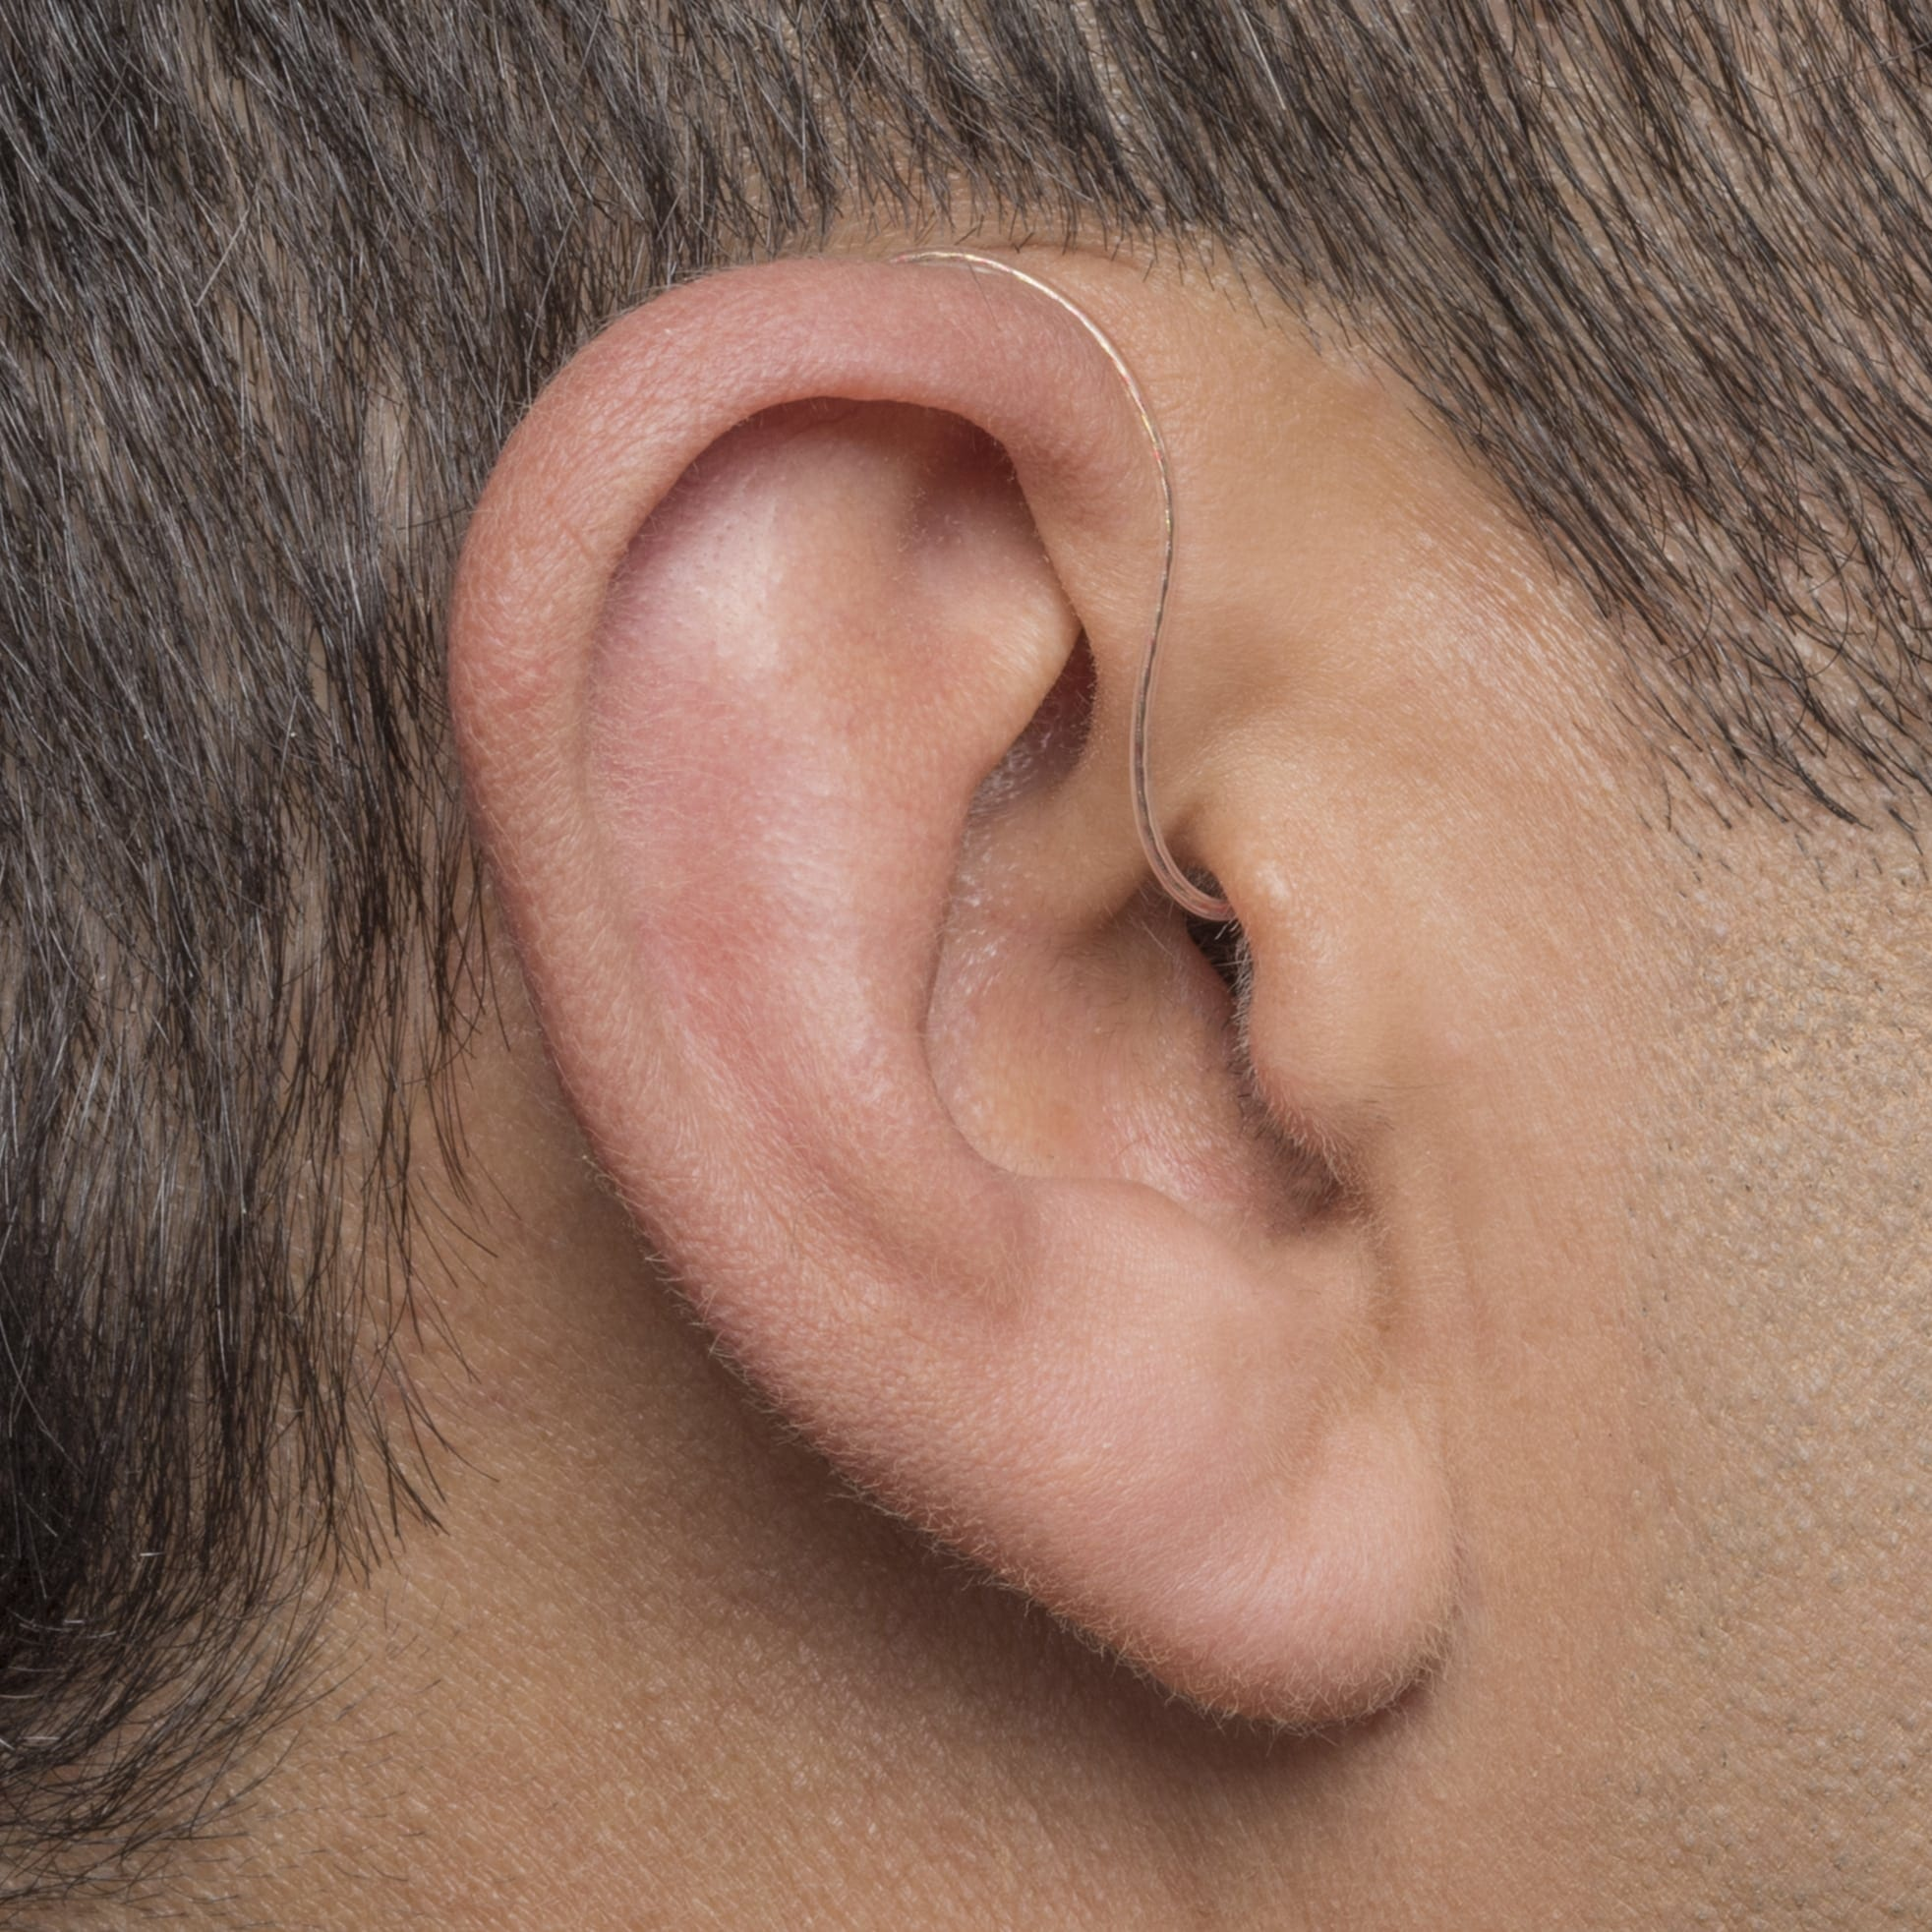 Receiver-In-Ear (RIC)